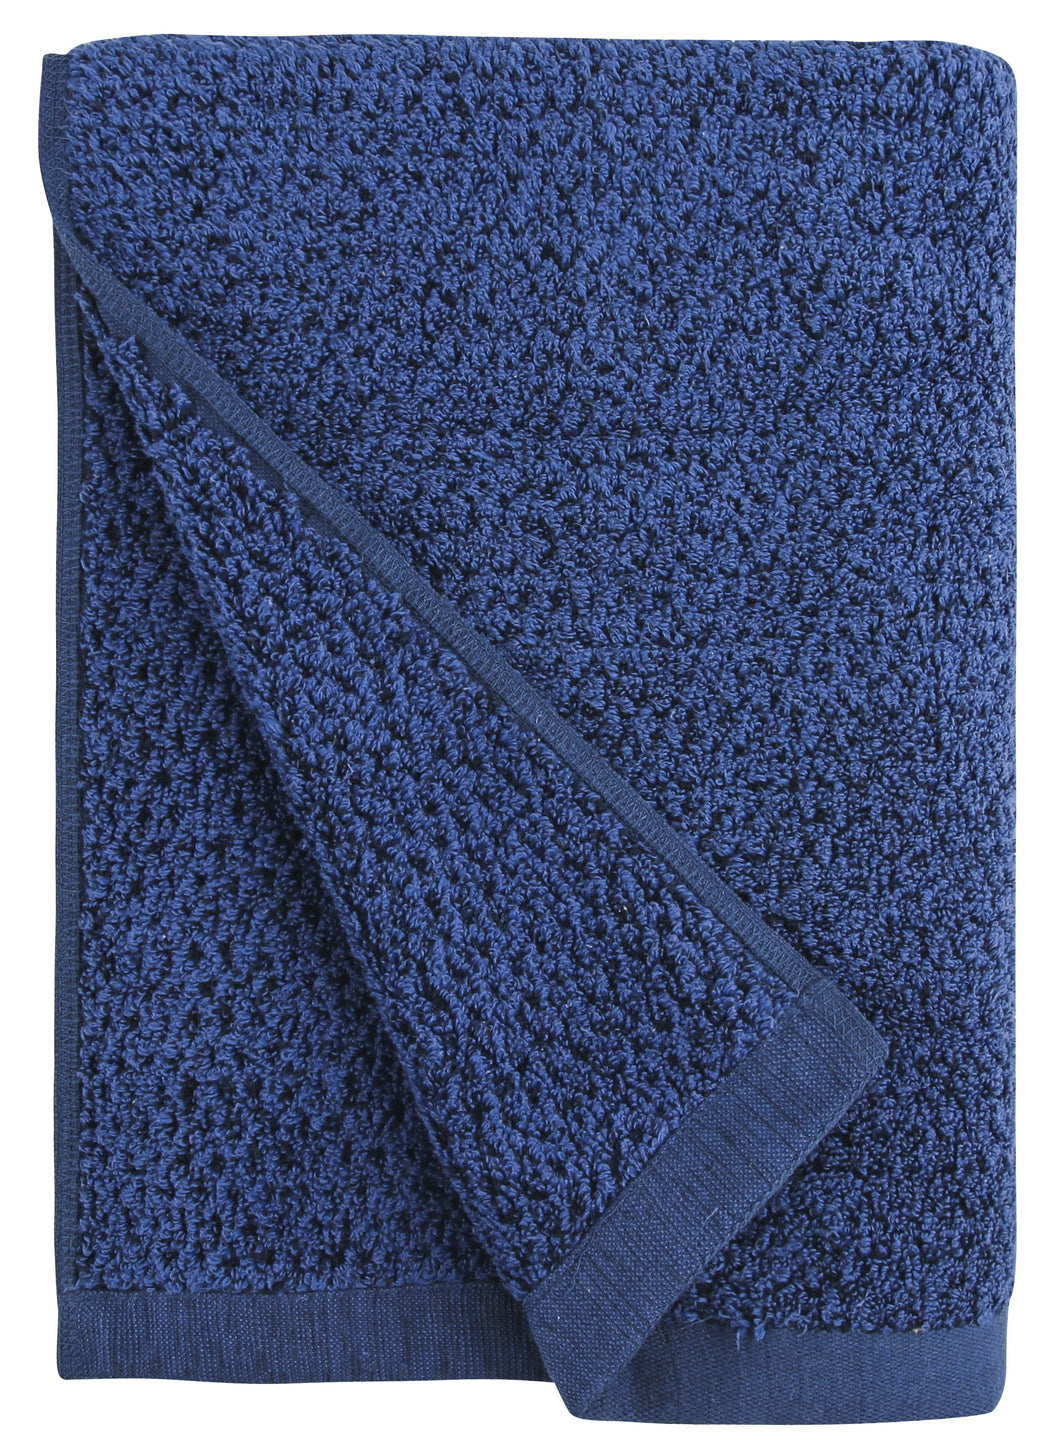 Diamond Jacquard Towels, Bath Towel - 1 Piece, Navy Blue